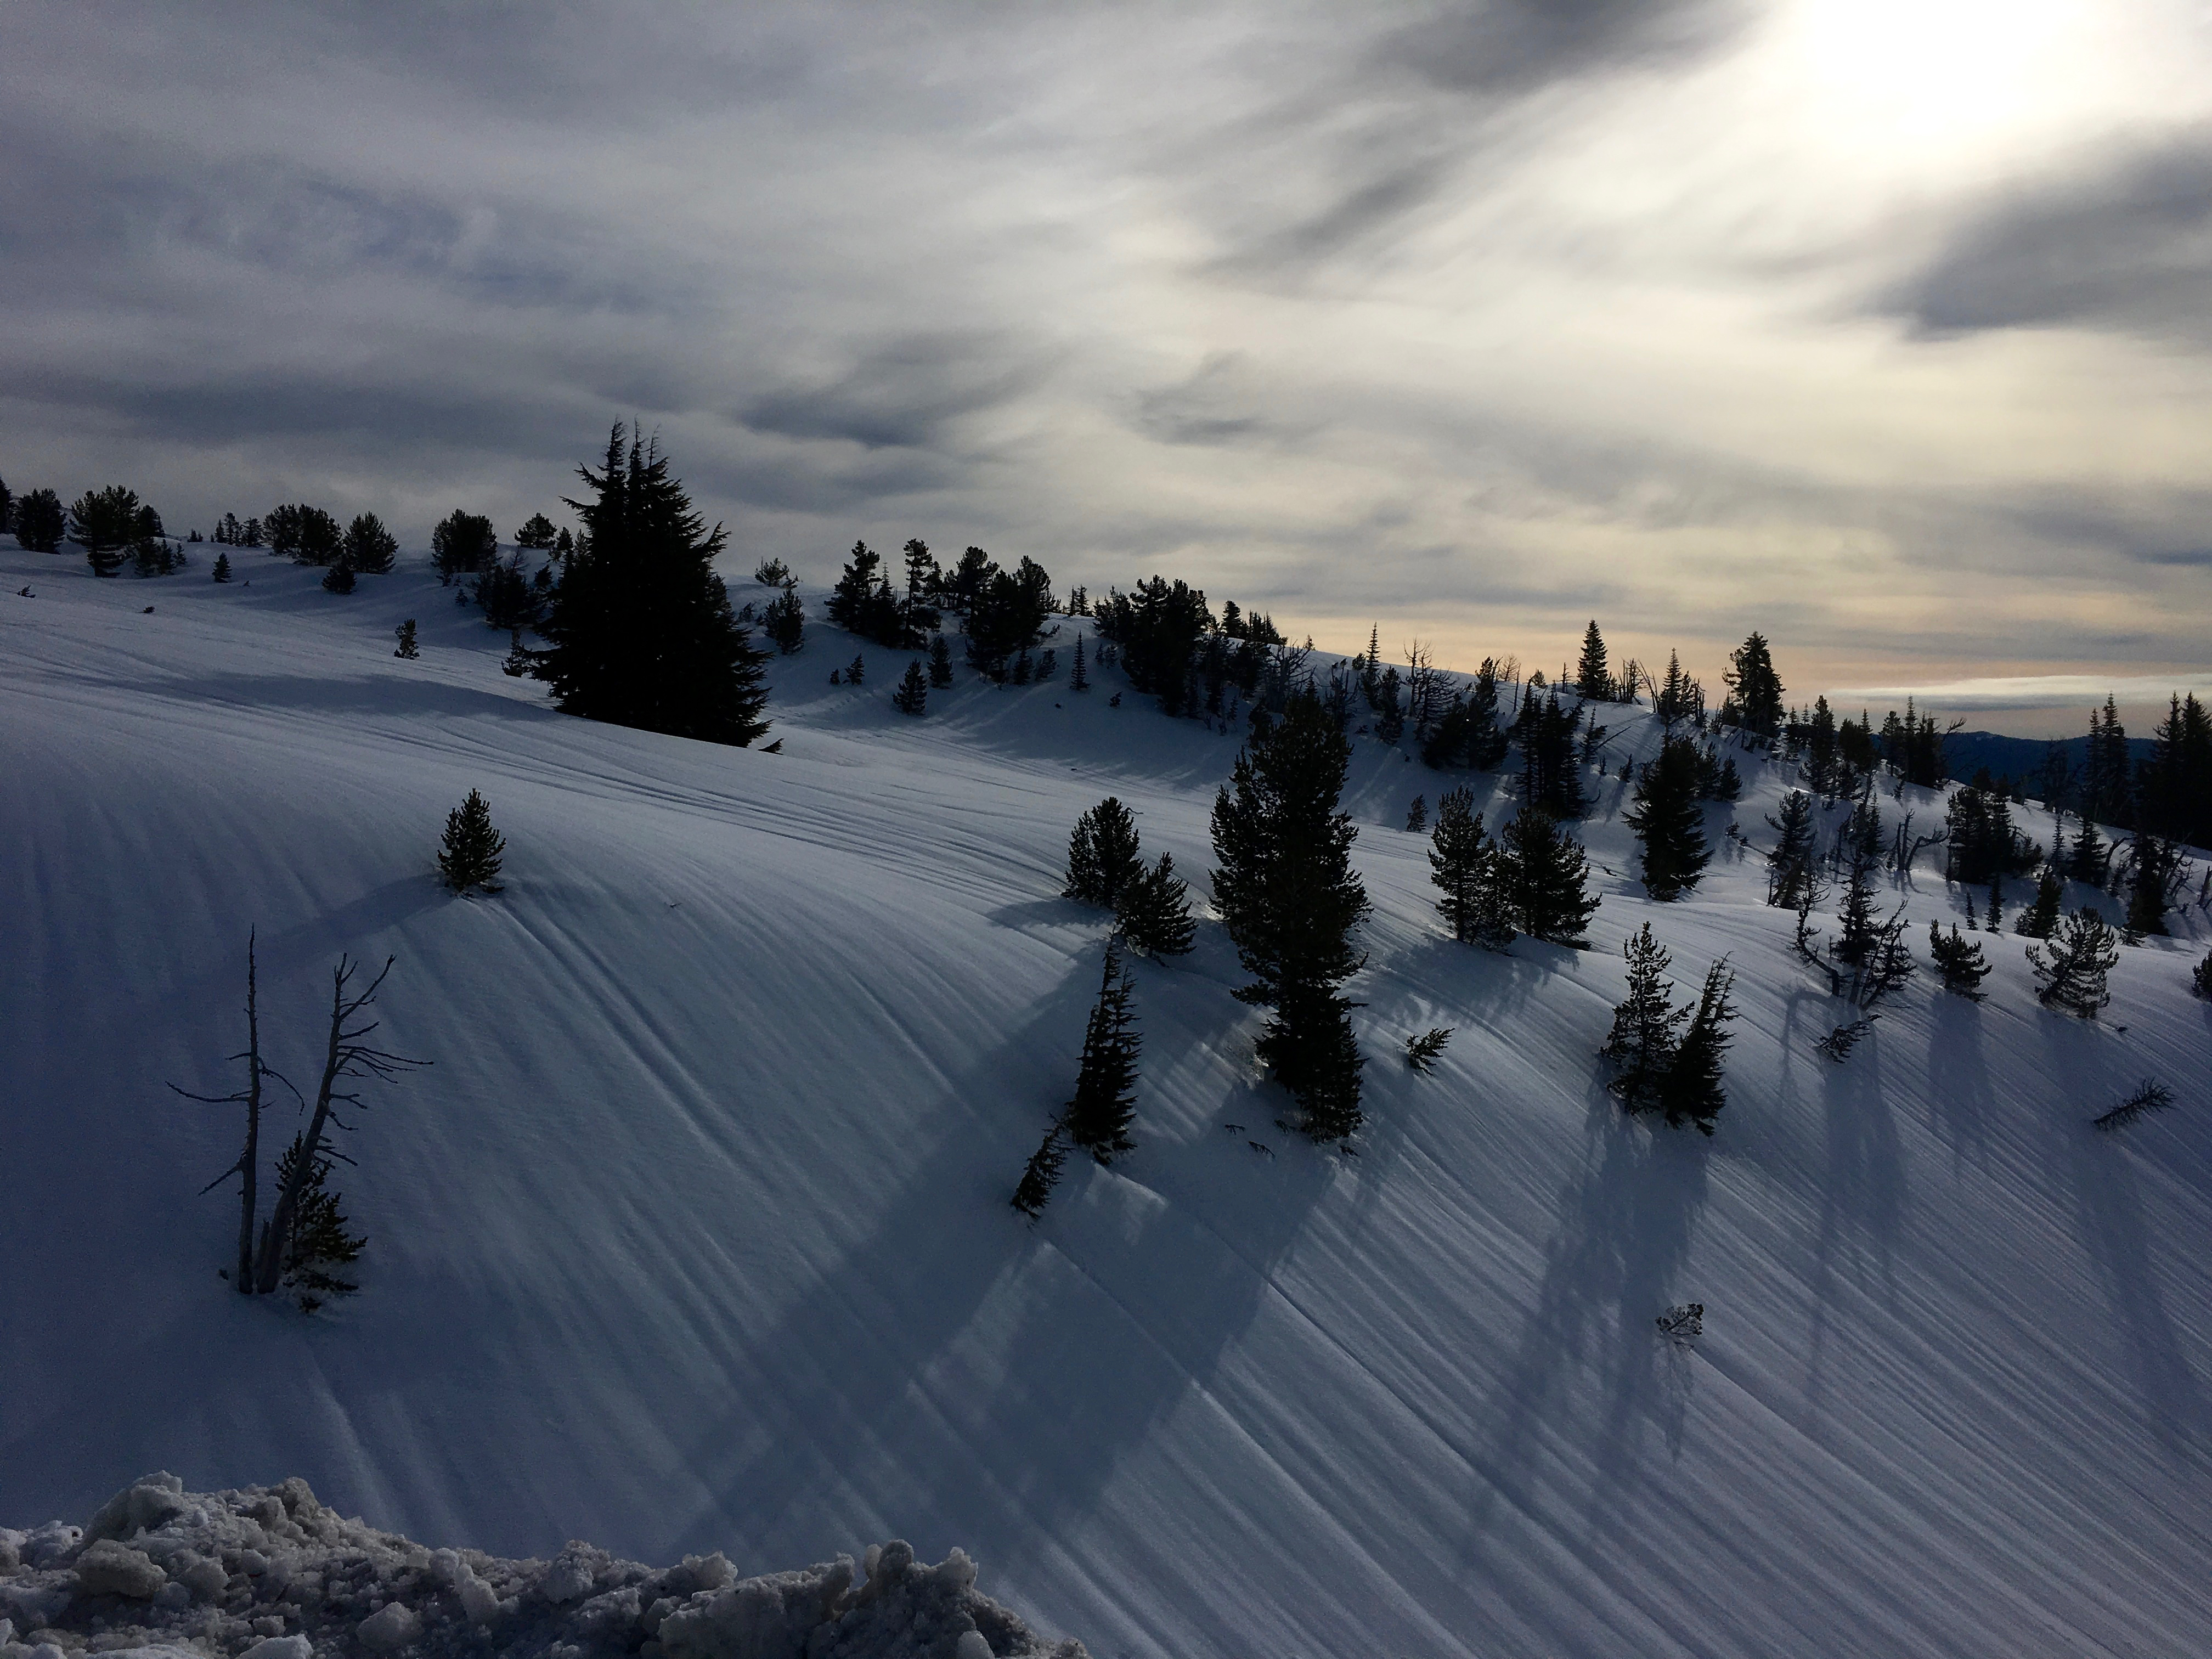 Wind Patterns in the Snow